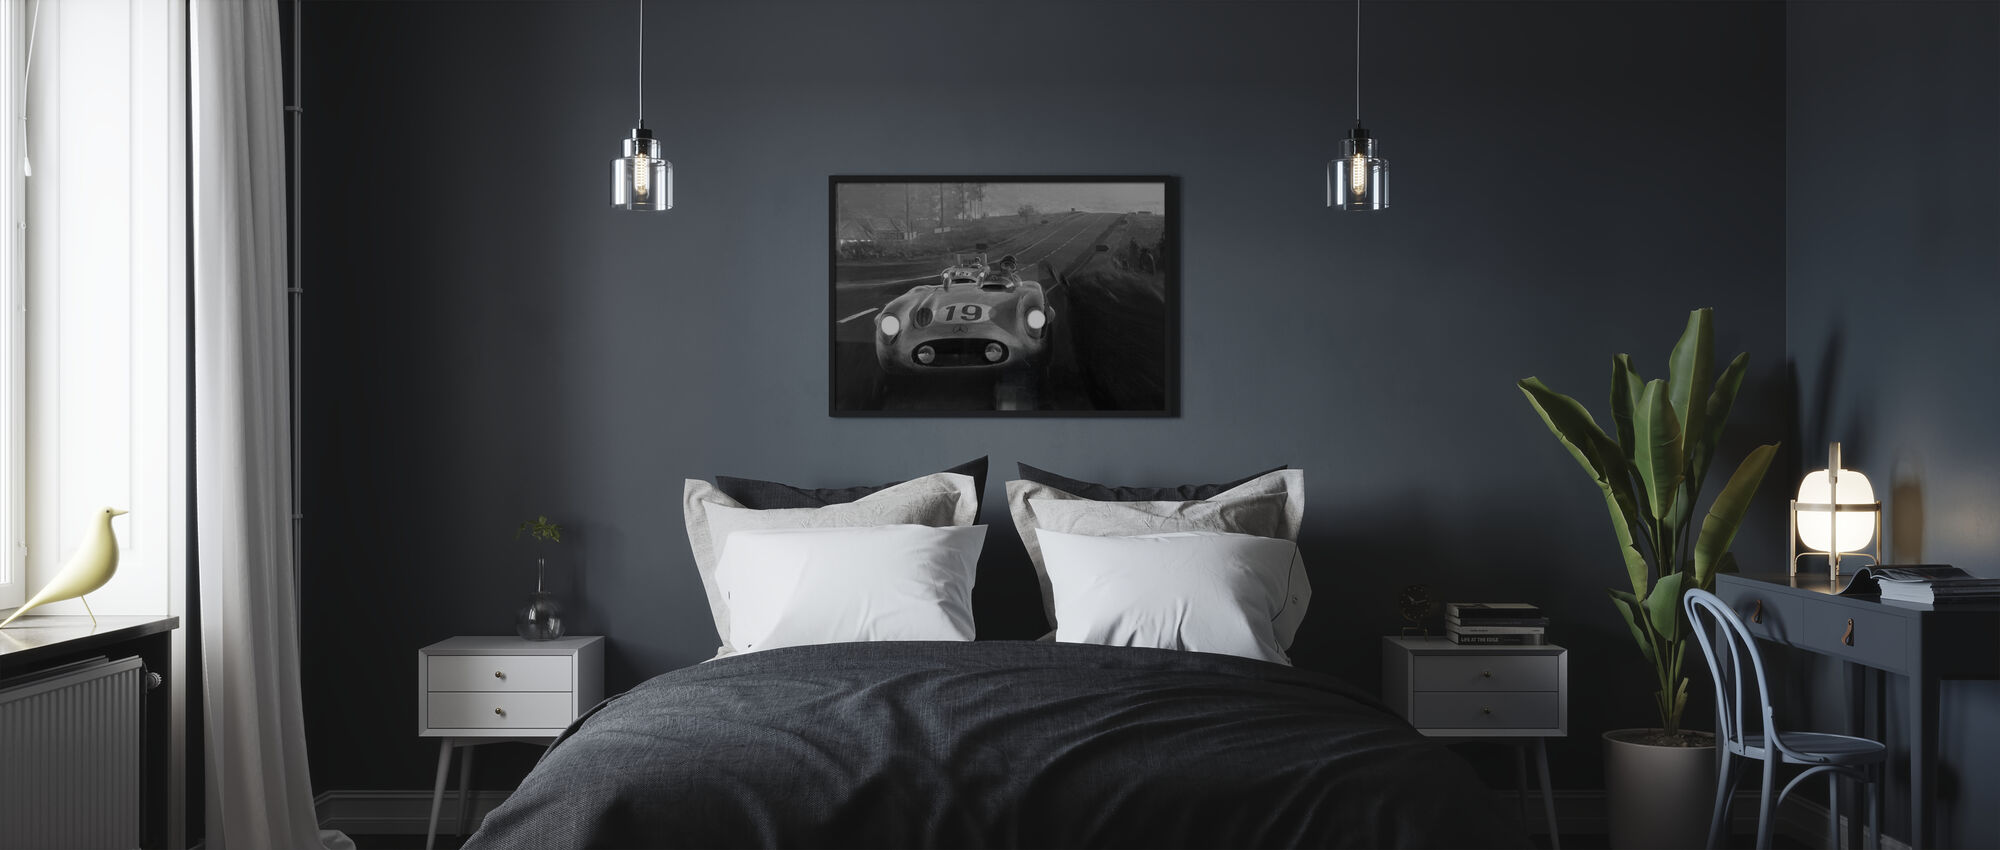 Old Classic Car BW - Poster - Bedroom